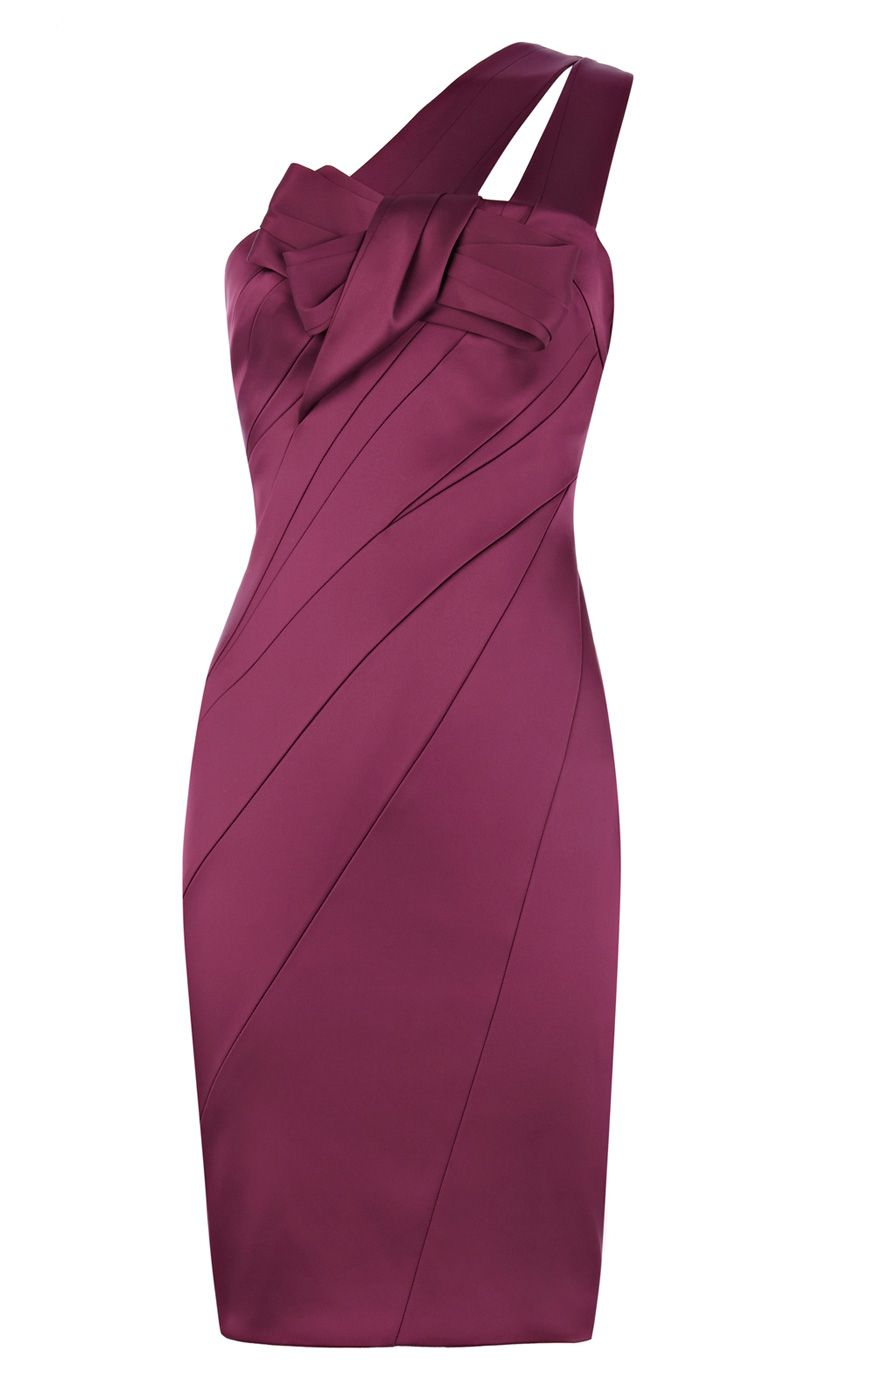 5b7bafa893a6 Karen Millen Signature Stretch Purple Satin Dress Especially, Karen Millen  One Shoulder design will show your beautiful and chic clavicle and shoulder.